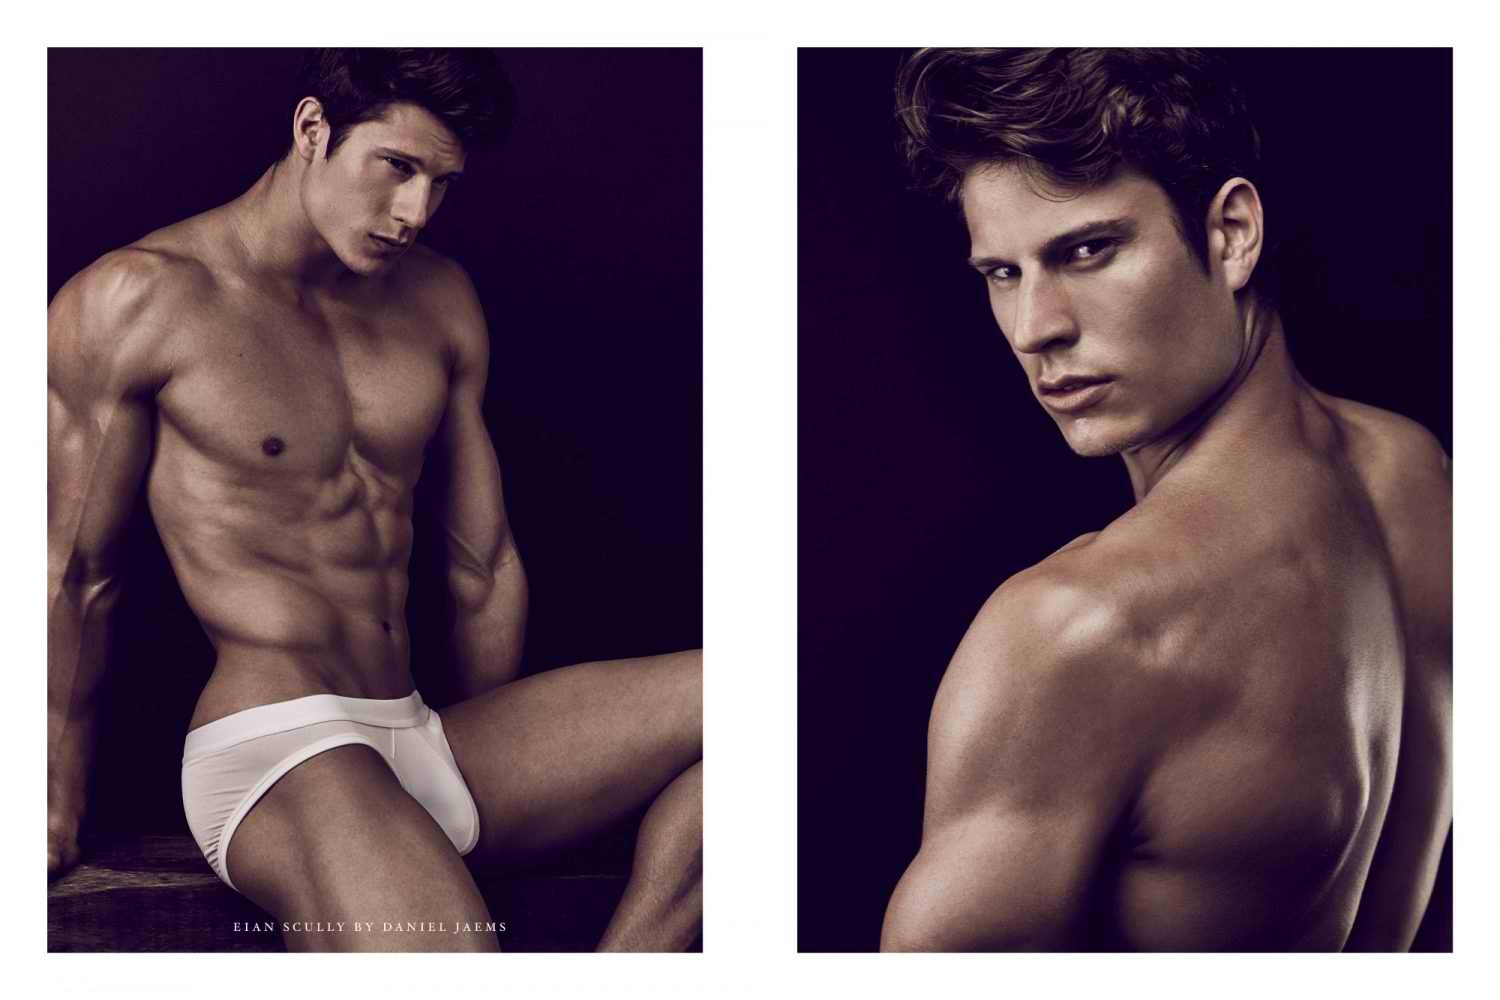 Eian-Scully-by-Daniel-Jaems-Obsession-No17-002-1500x1000 (1)